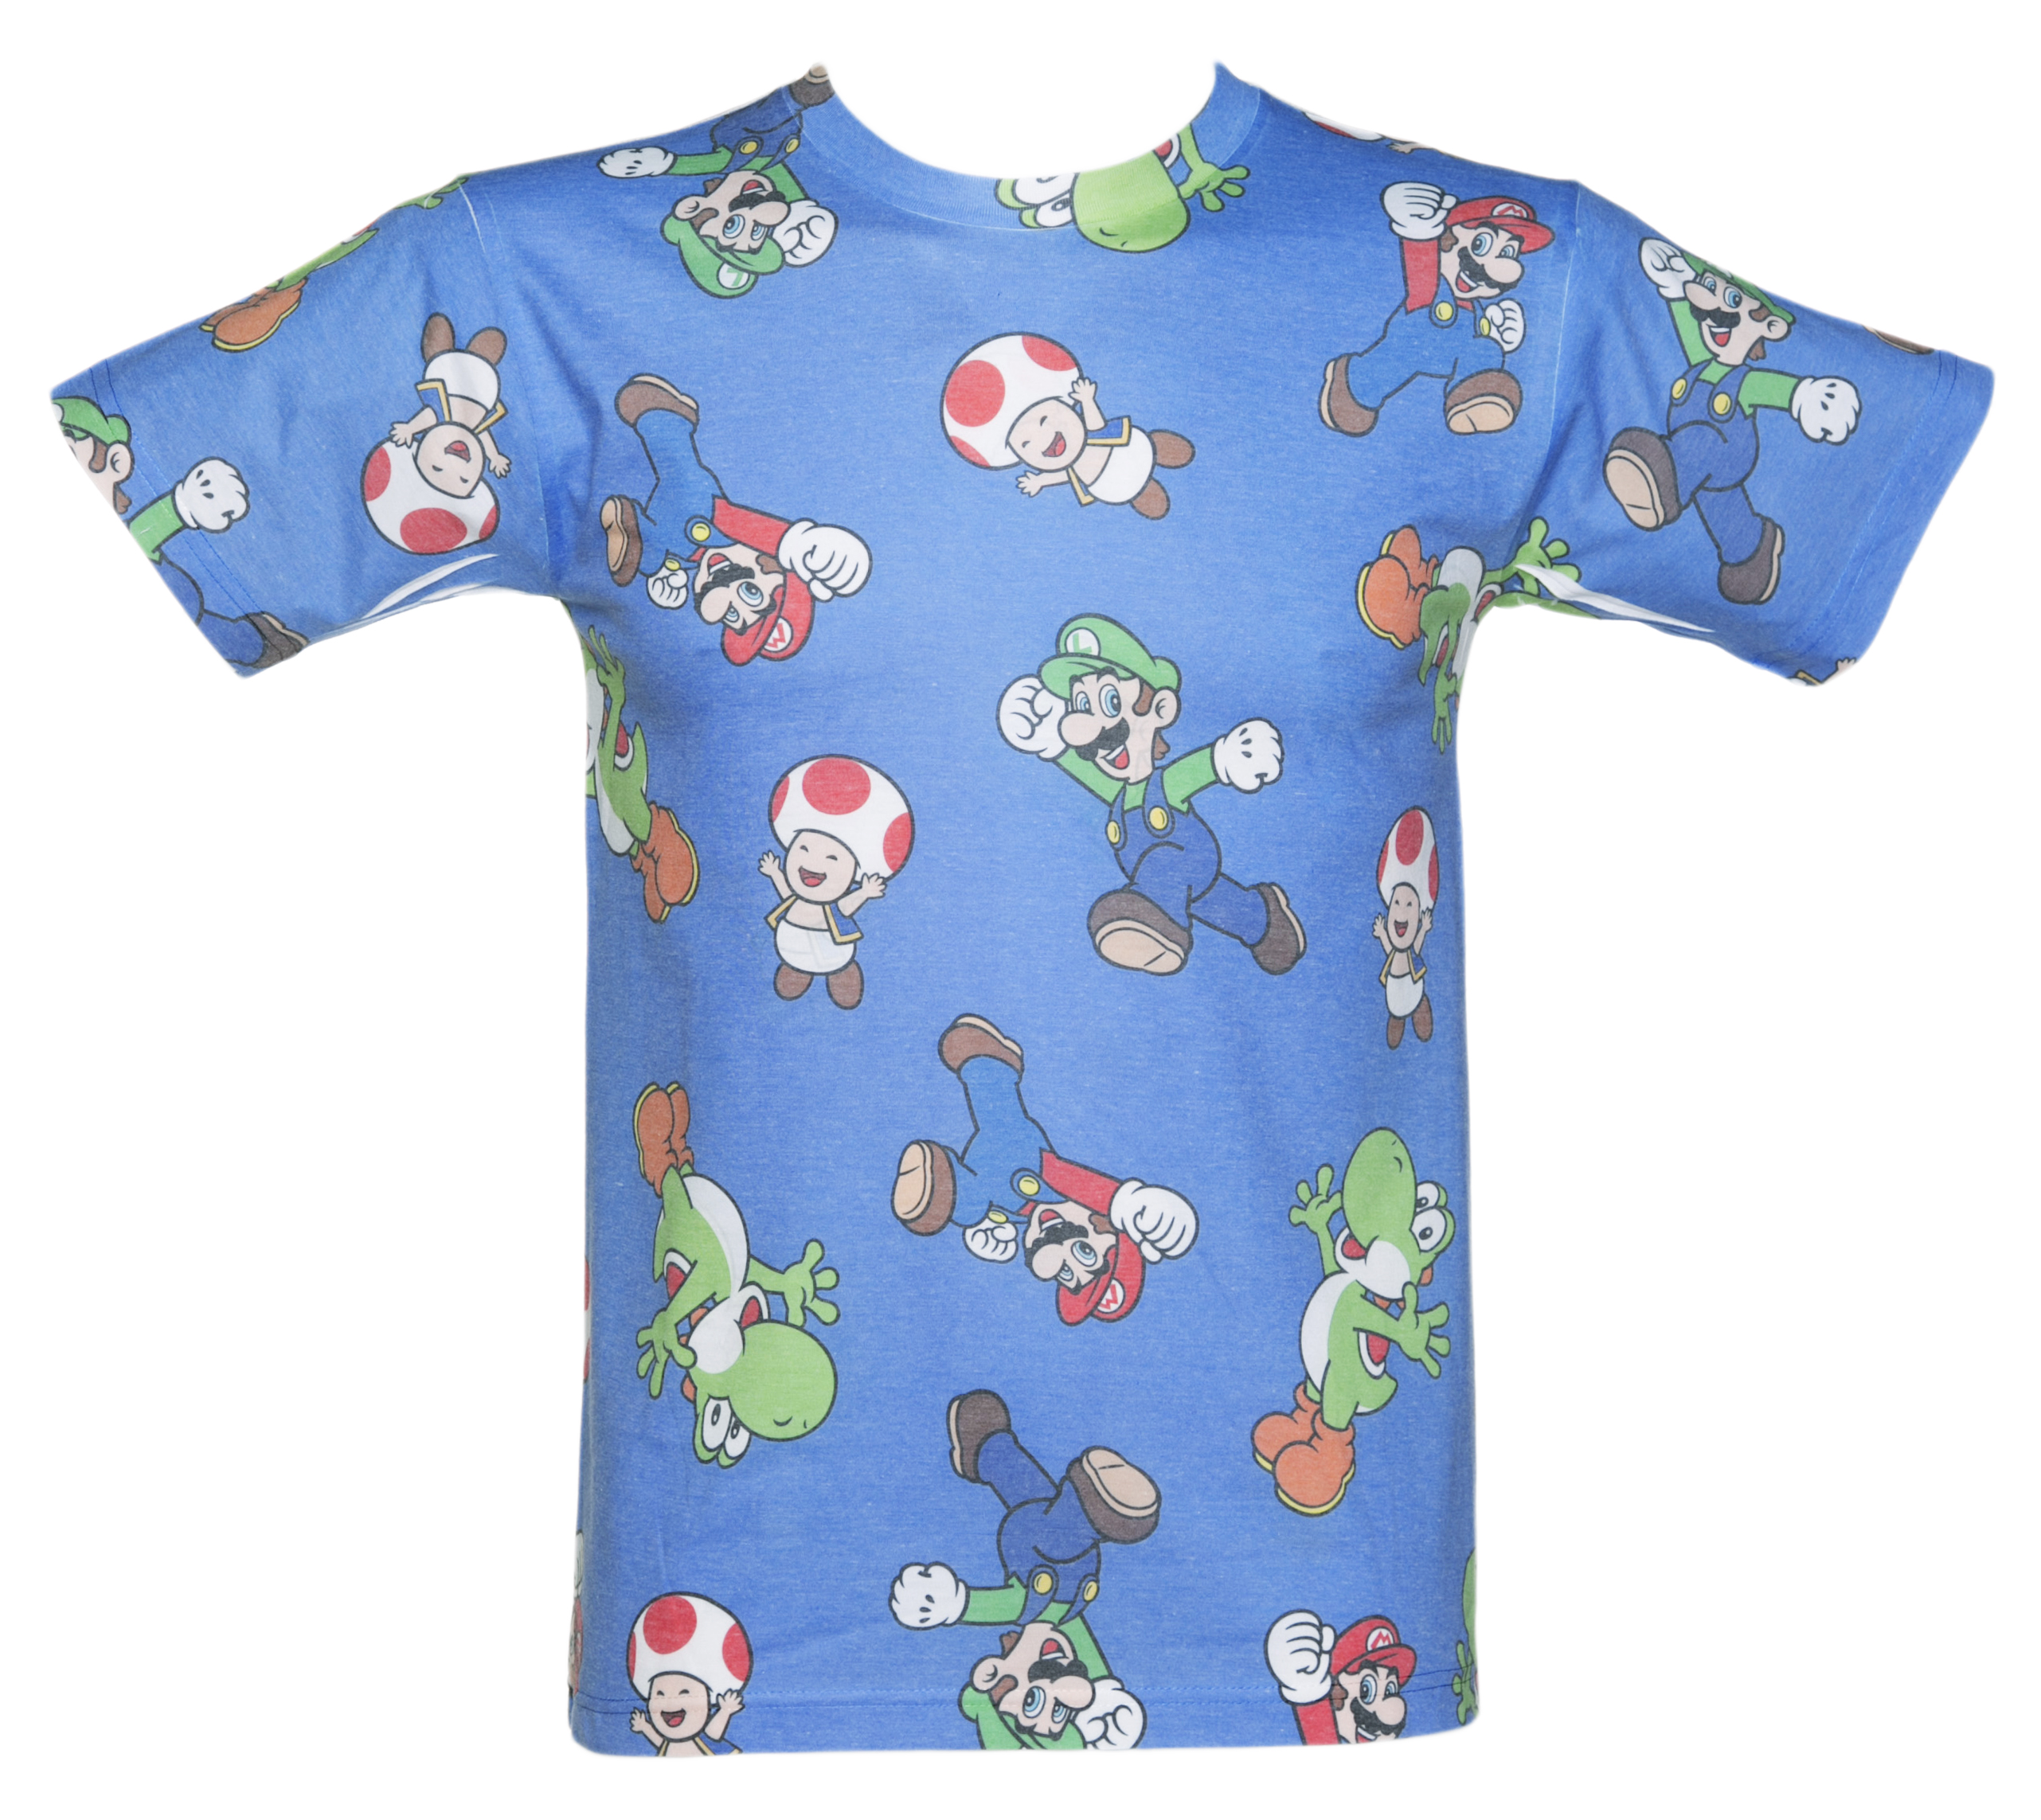 Nintendo Super Mario Brothers Sublimation T-Shirt